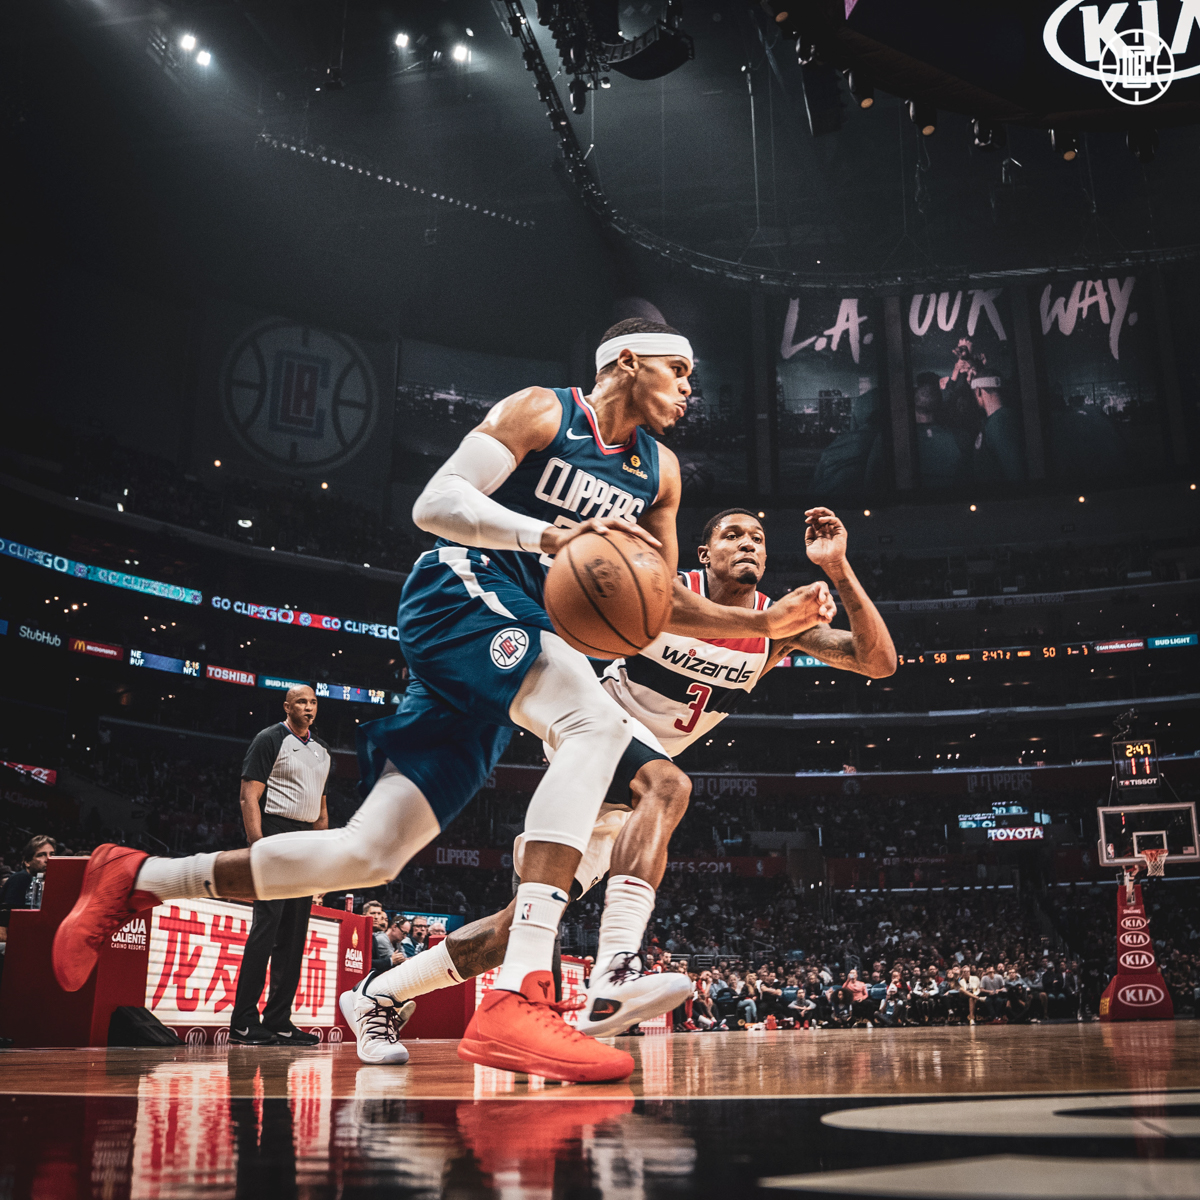 Clippers vs Wizards #2.jpg